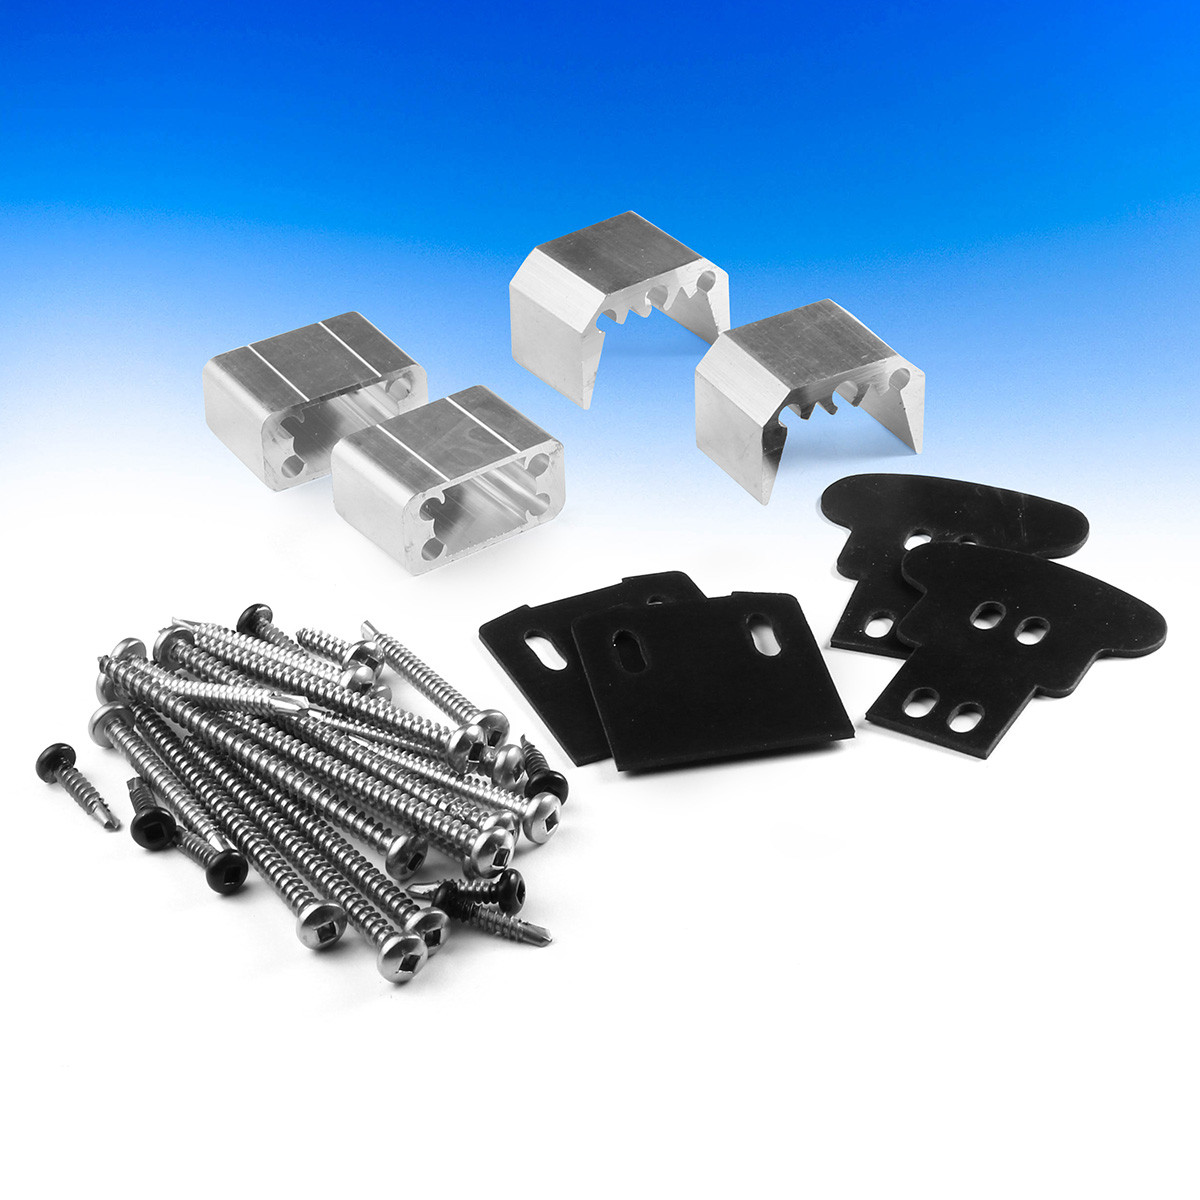 DesignRail Cut Kit by Feeney - Level - Uninstalled - Package Contents